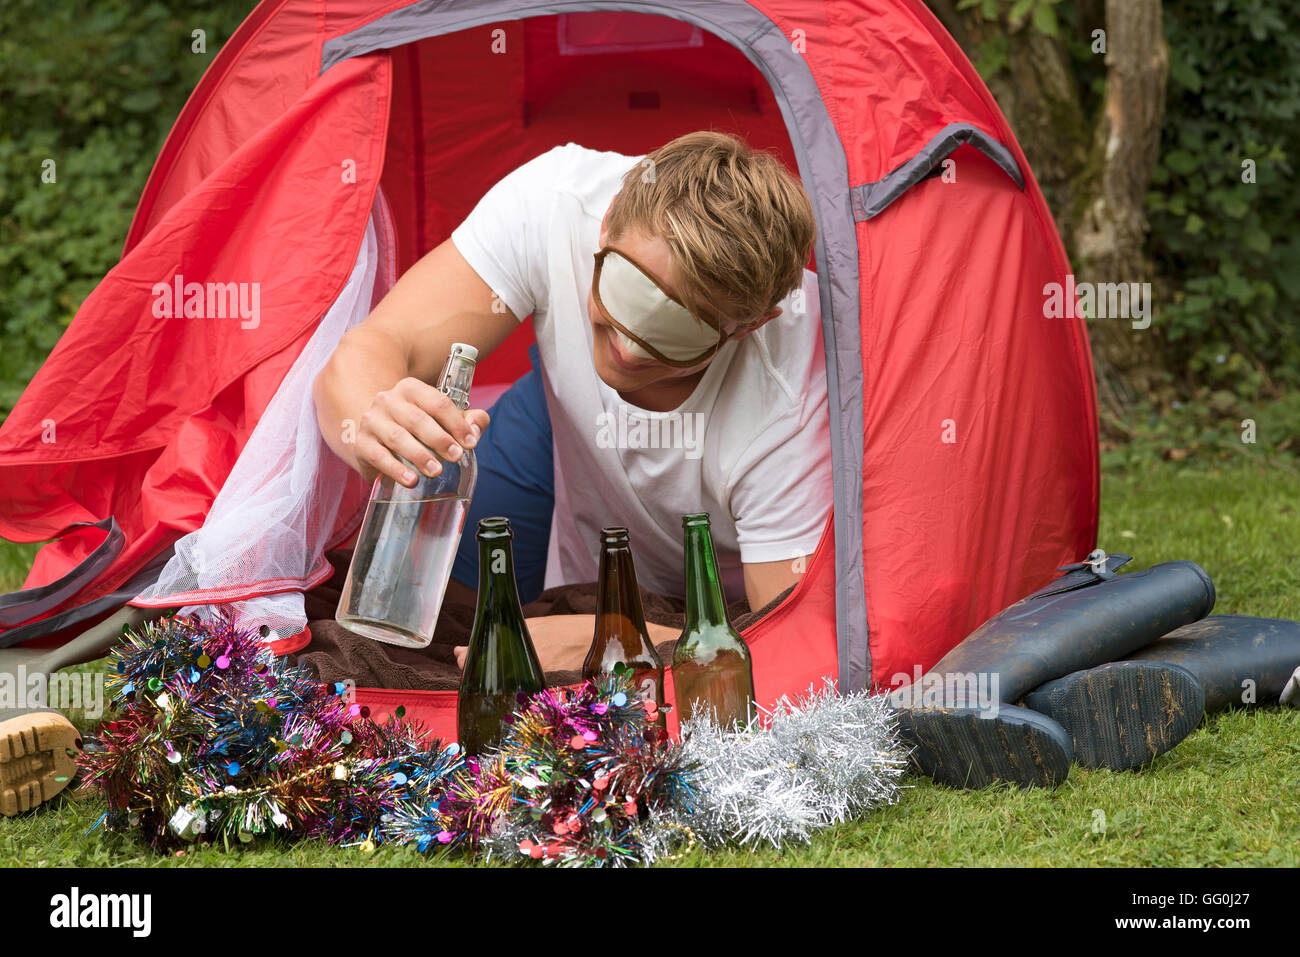 CAMPING PARTY TIME  - A young man reaches outside a tent for a water bottle - Stock Image